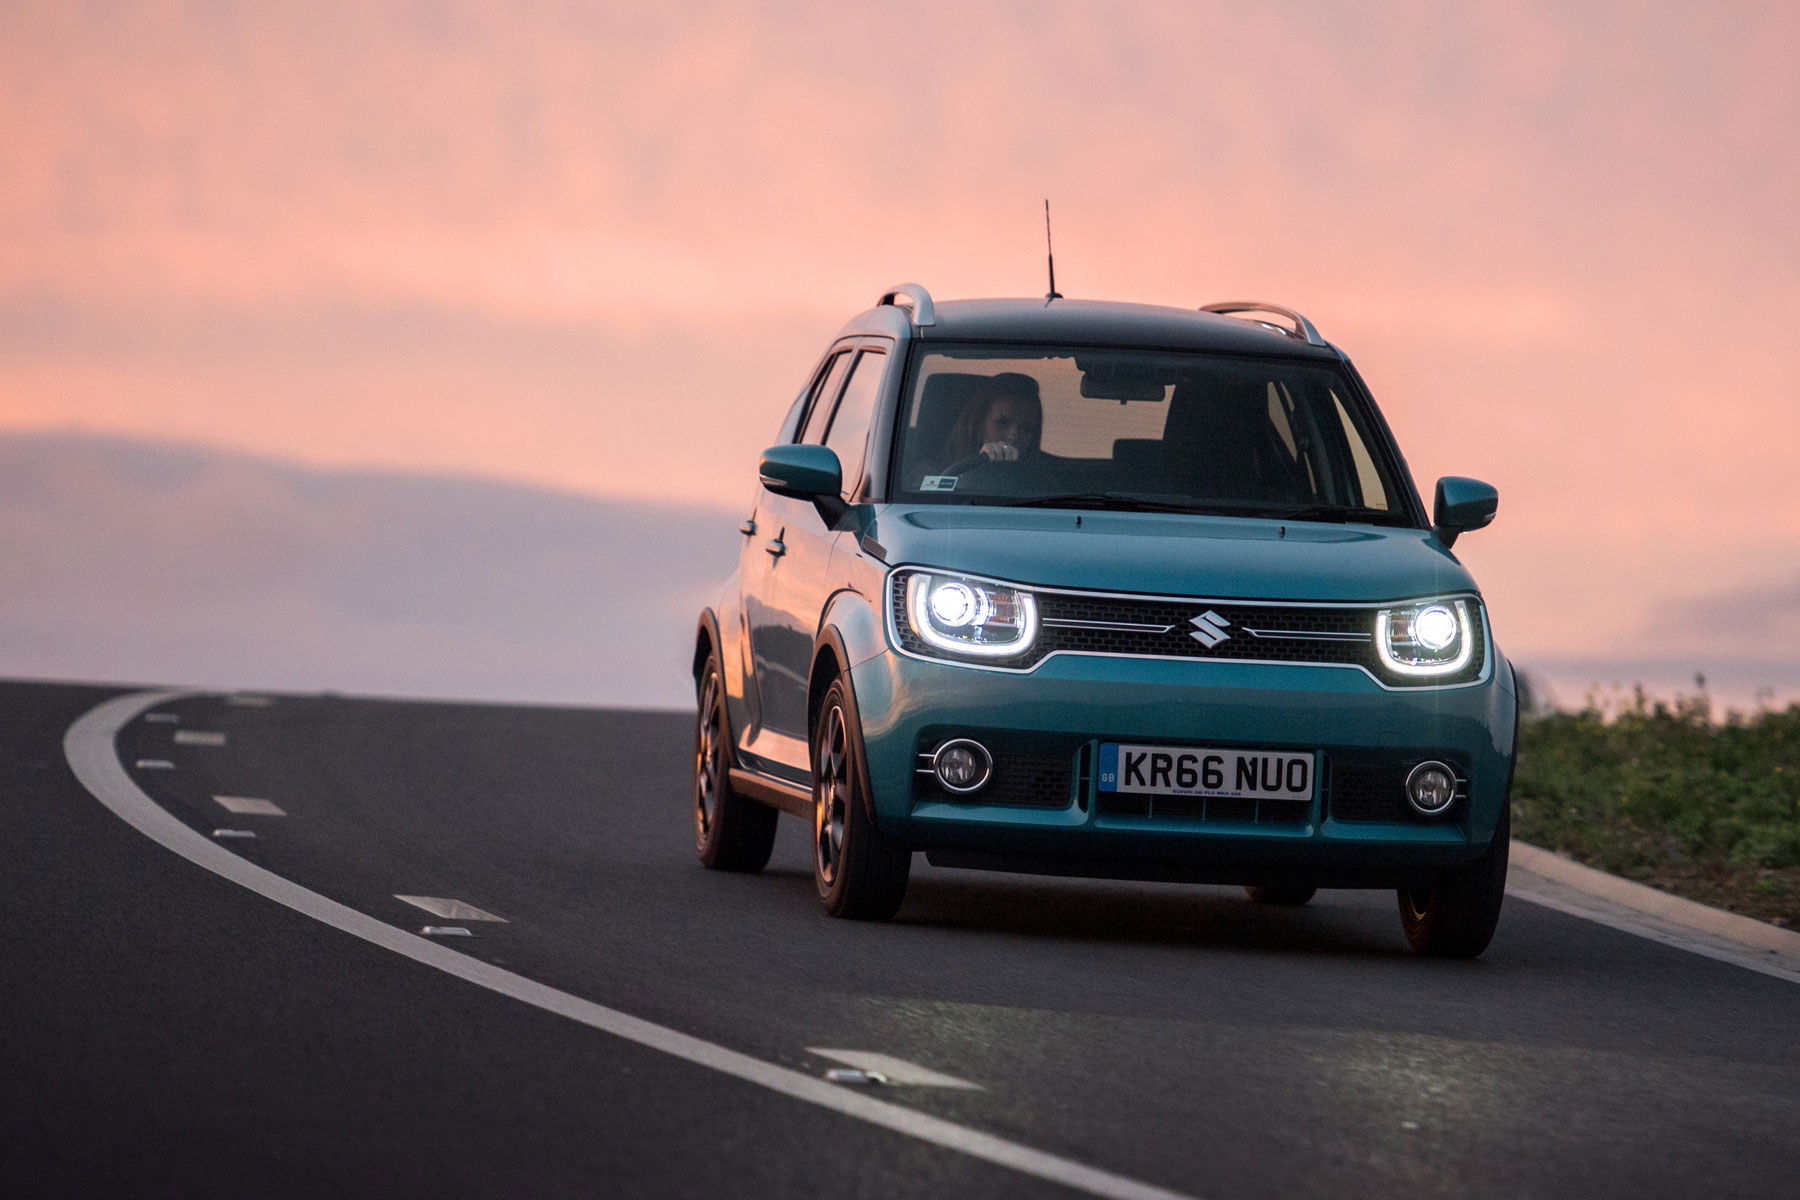 2017 Suzuki Ignis review: emotionally, it's a brilliant small car